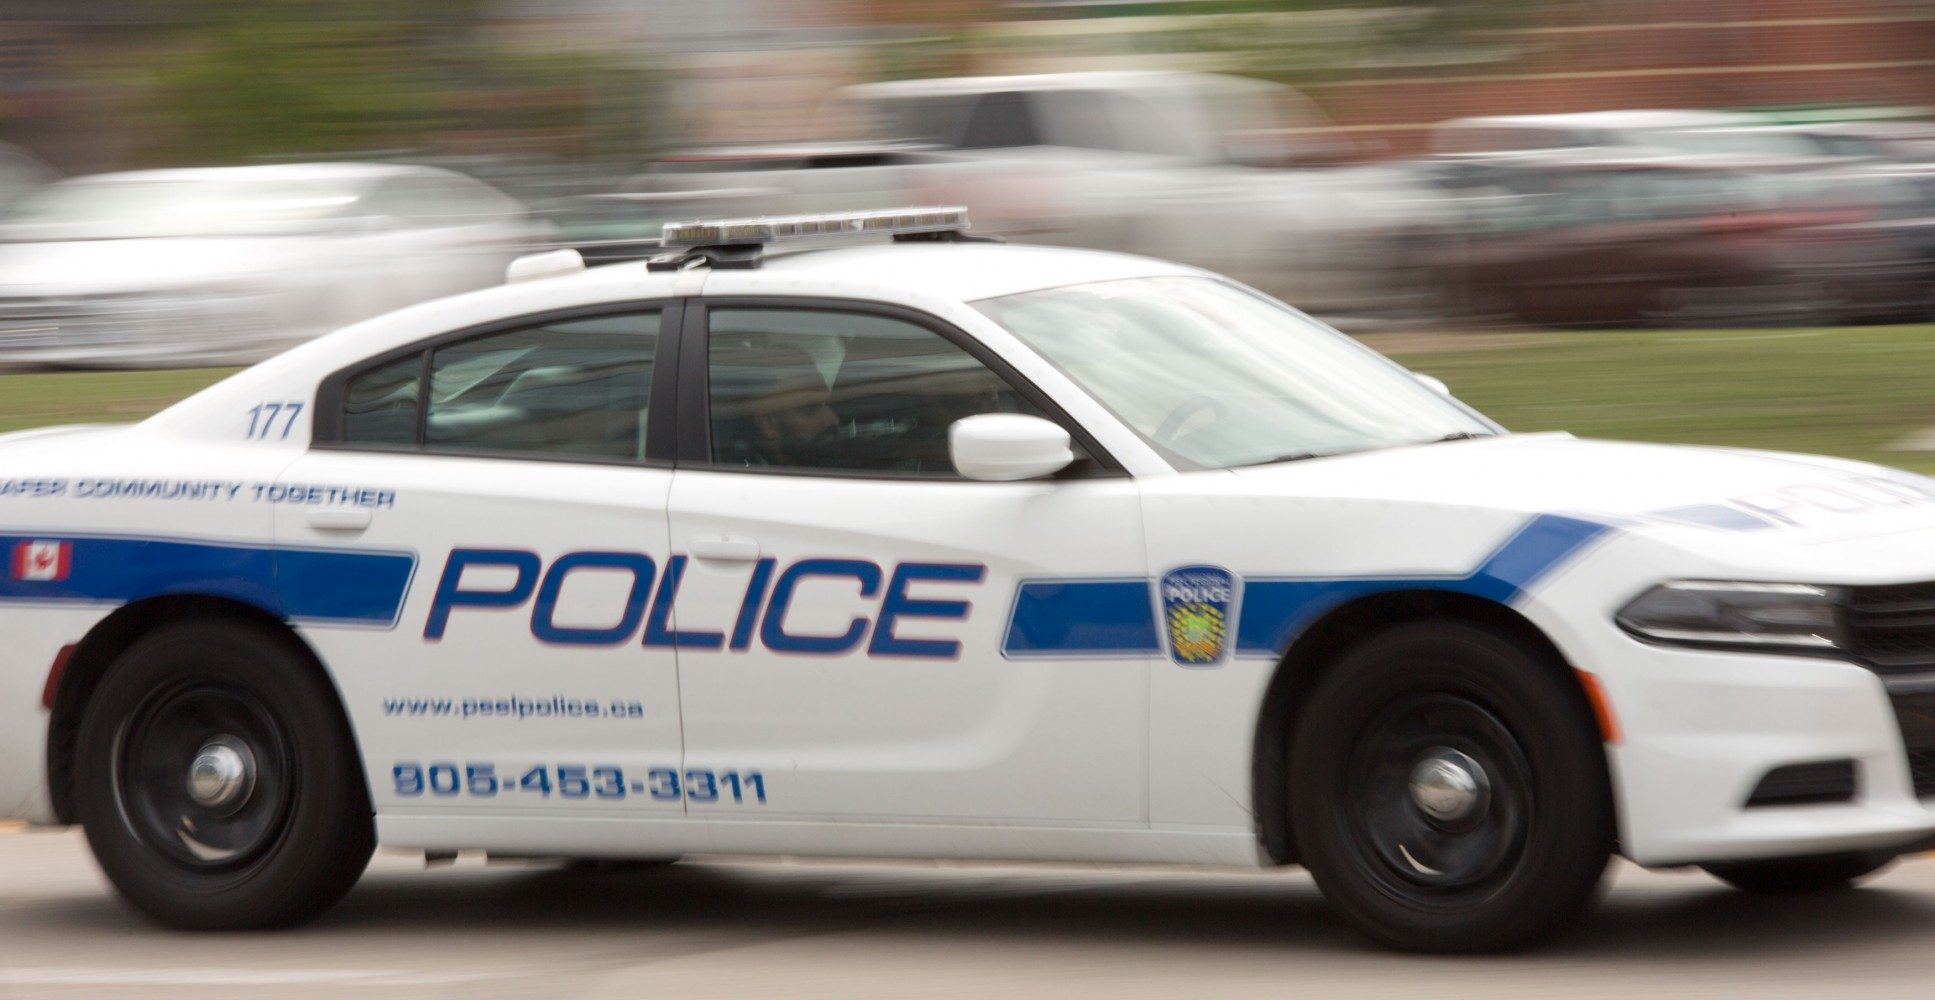 Poll shows public safety is a top issue for Brampton voters. Jeffrey and Brown fighting over who's toughest on crime